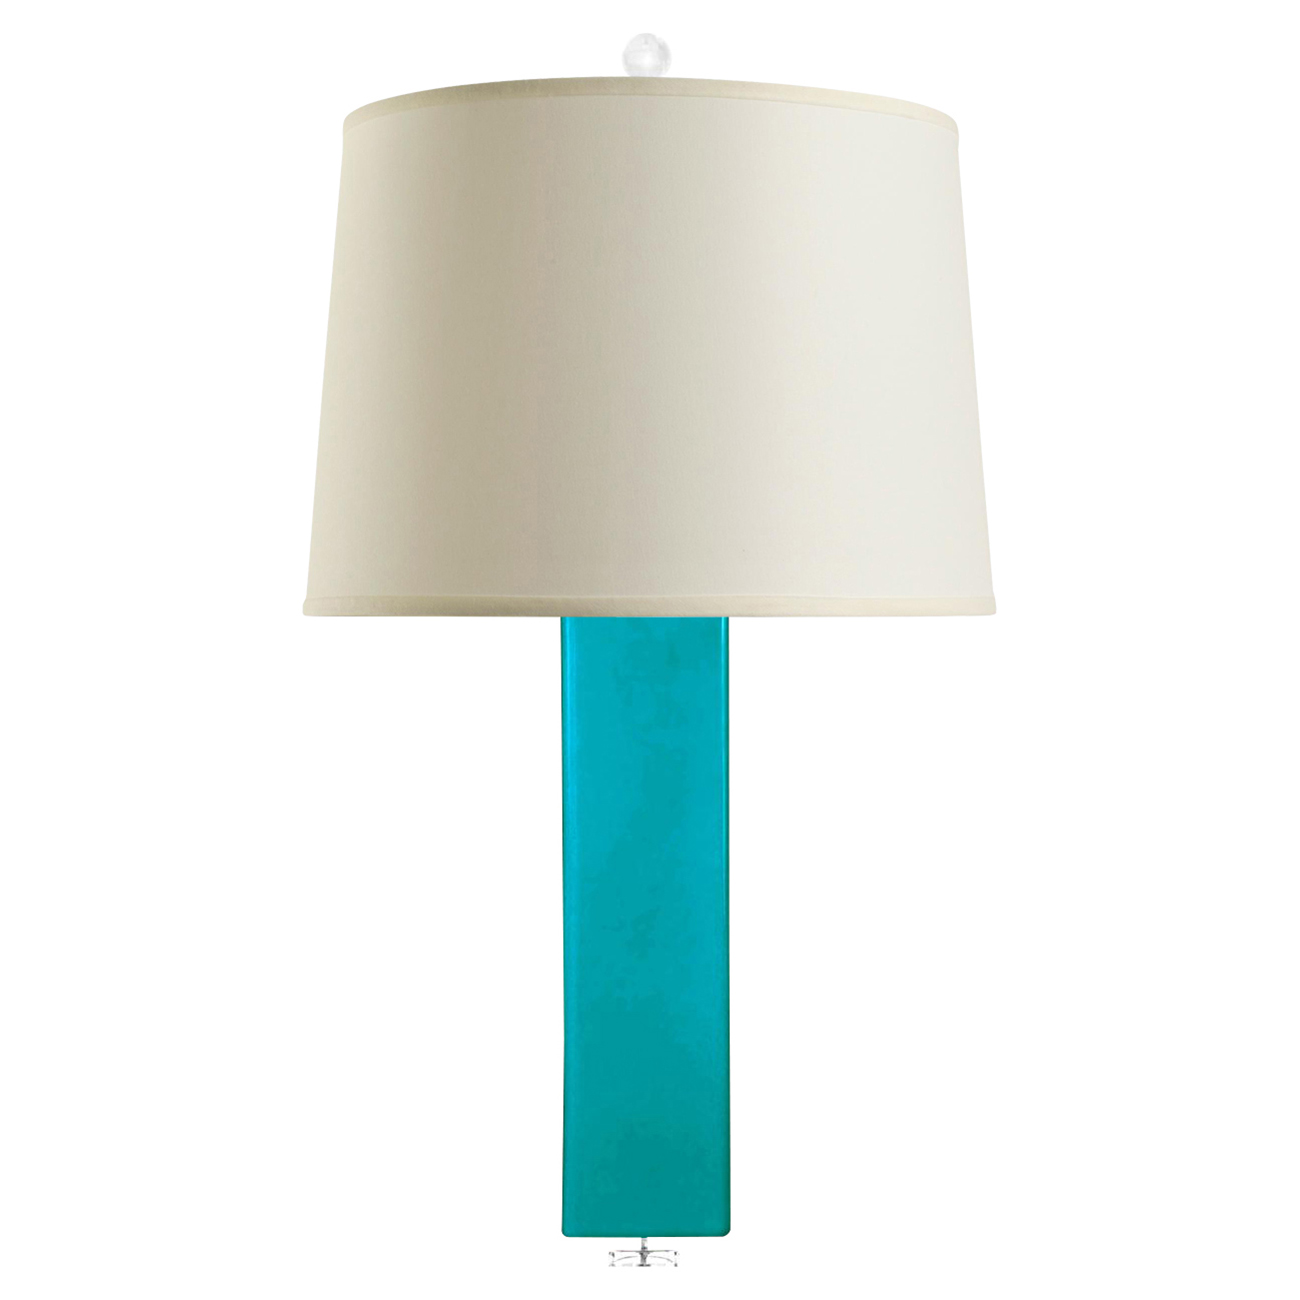 Pula Coastal Rectangle Column Turquoise Ceramic Linen Table Lamp